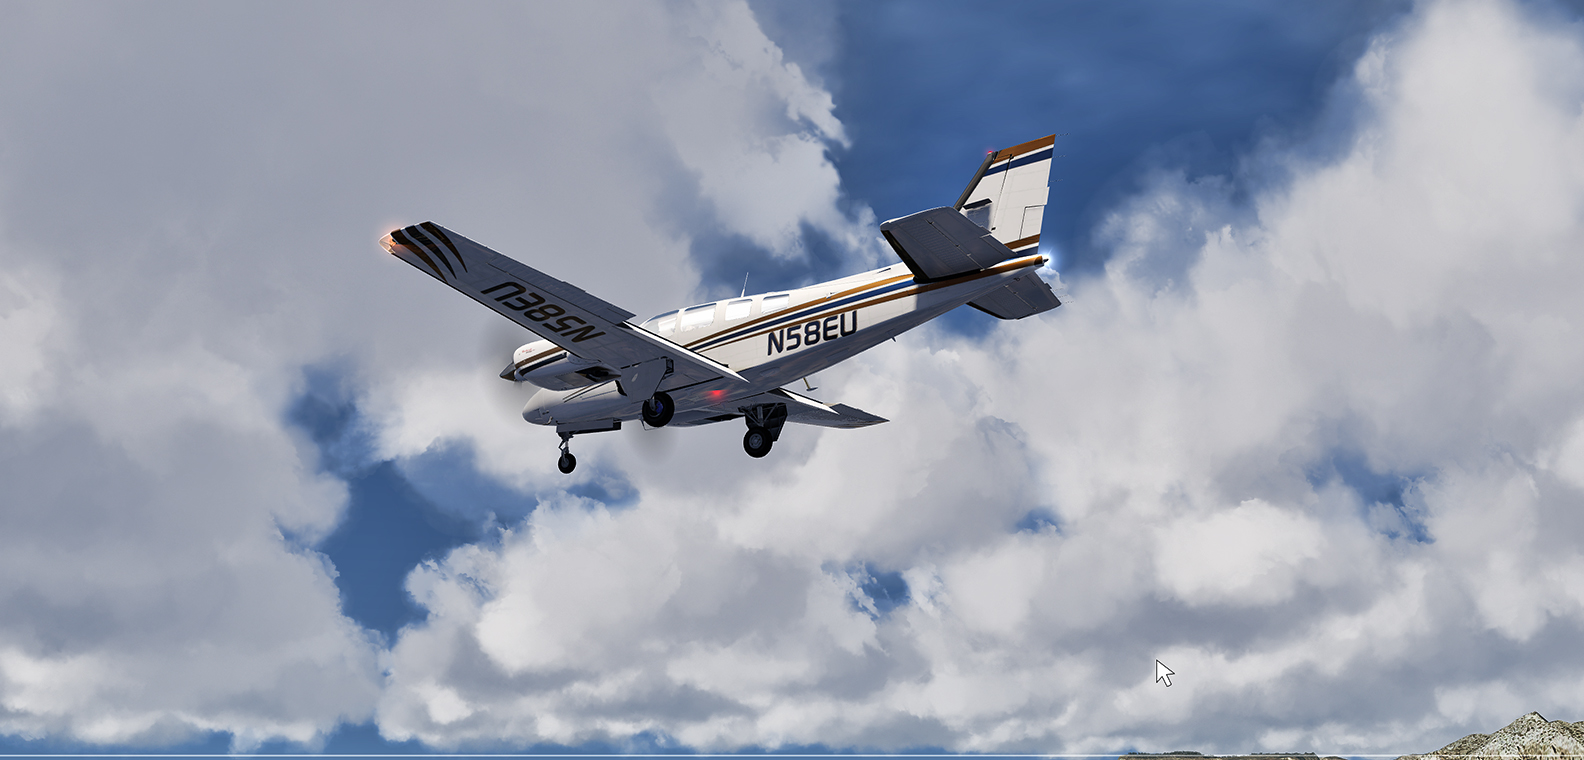 aerofly_fs_2_screenshot_19_20190422-2319